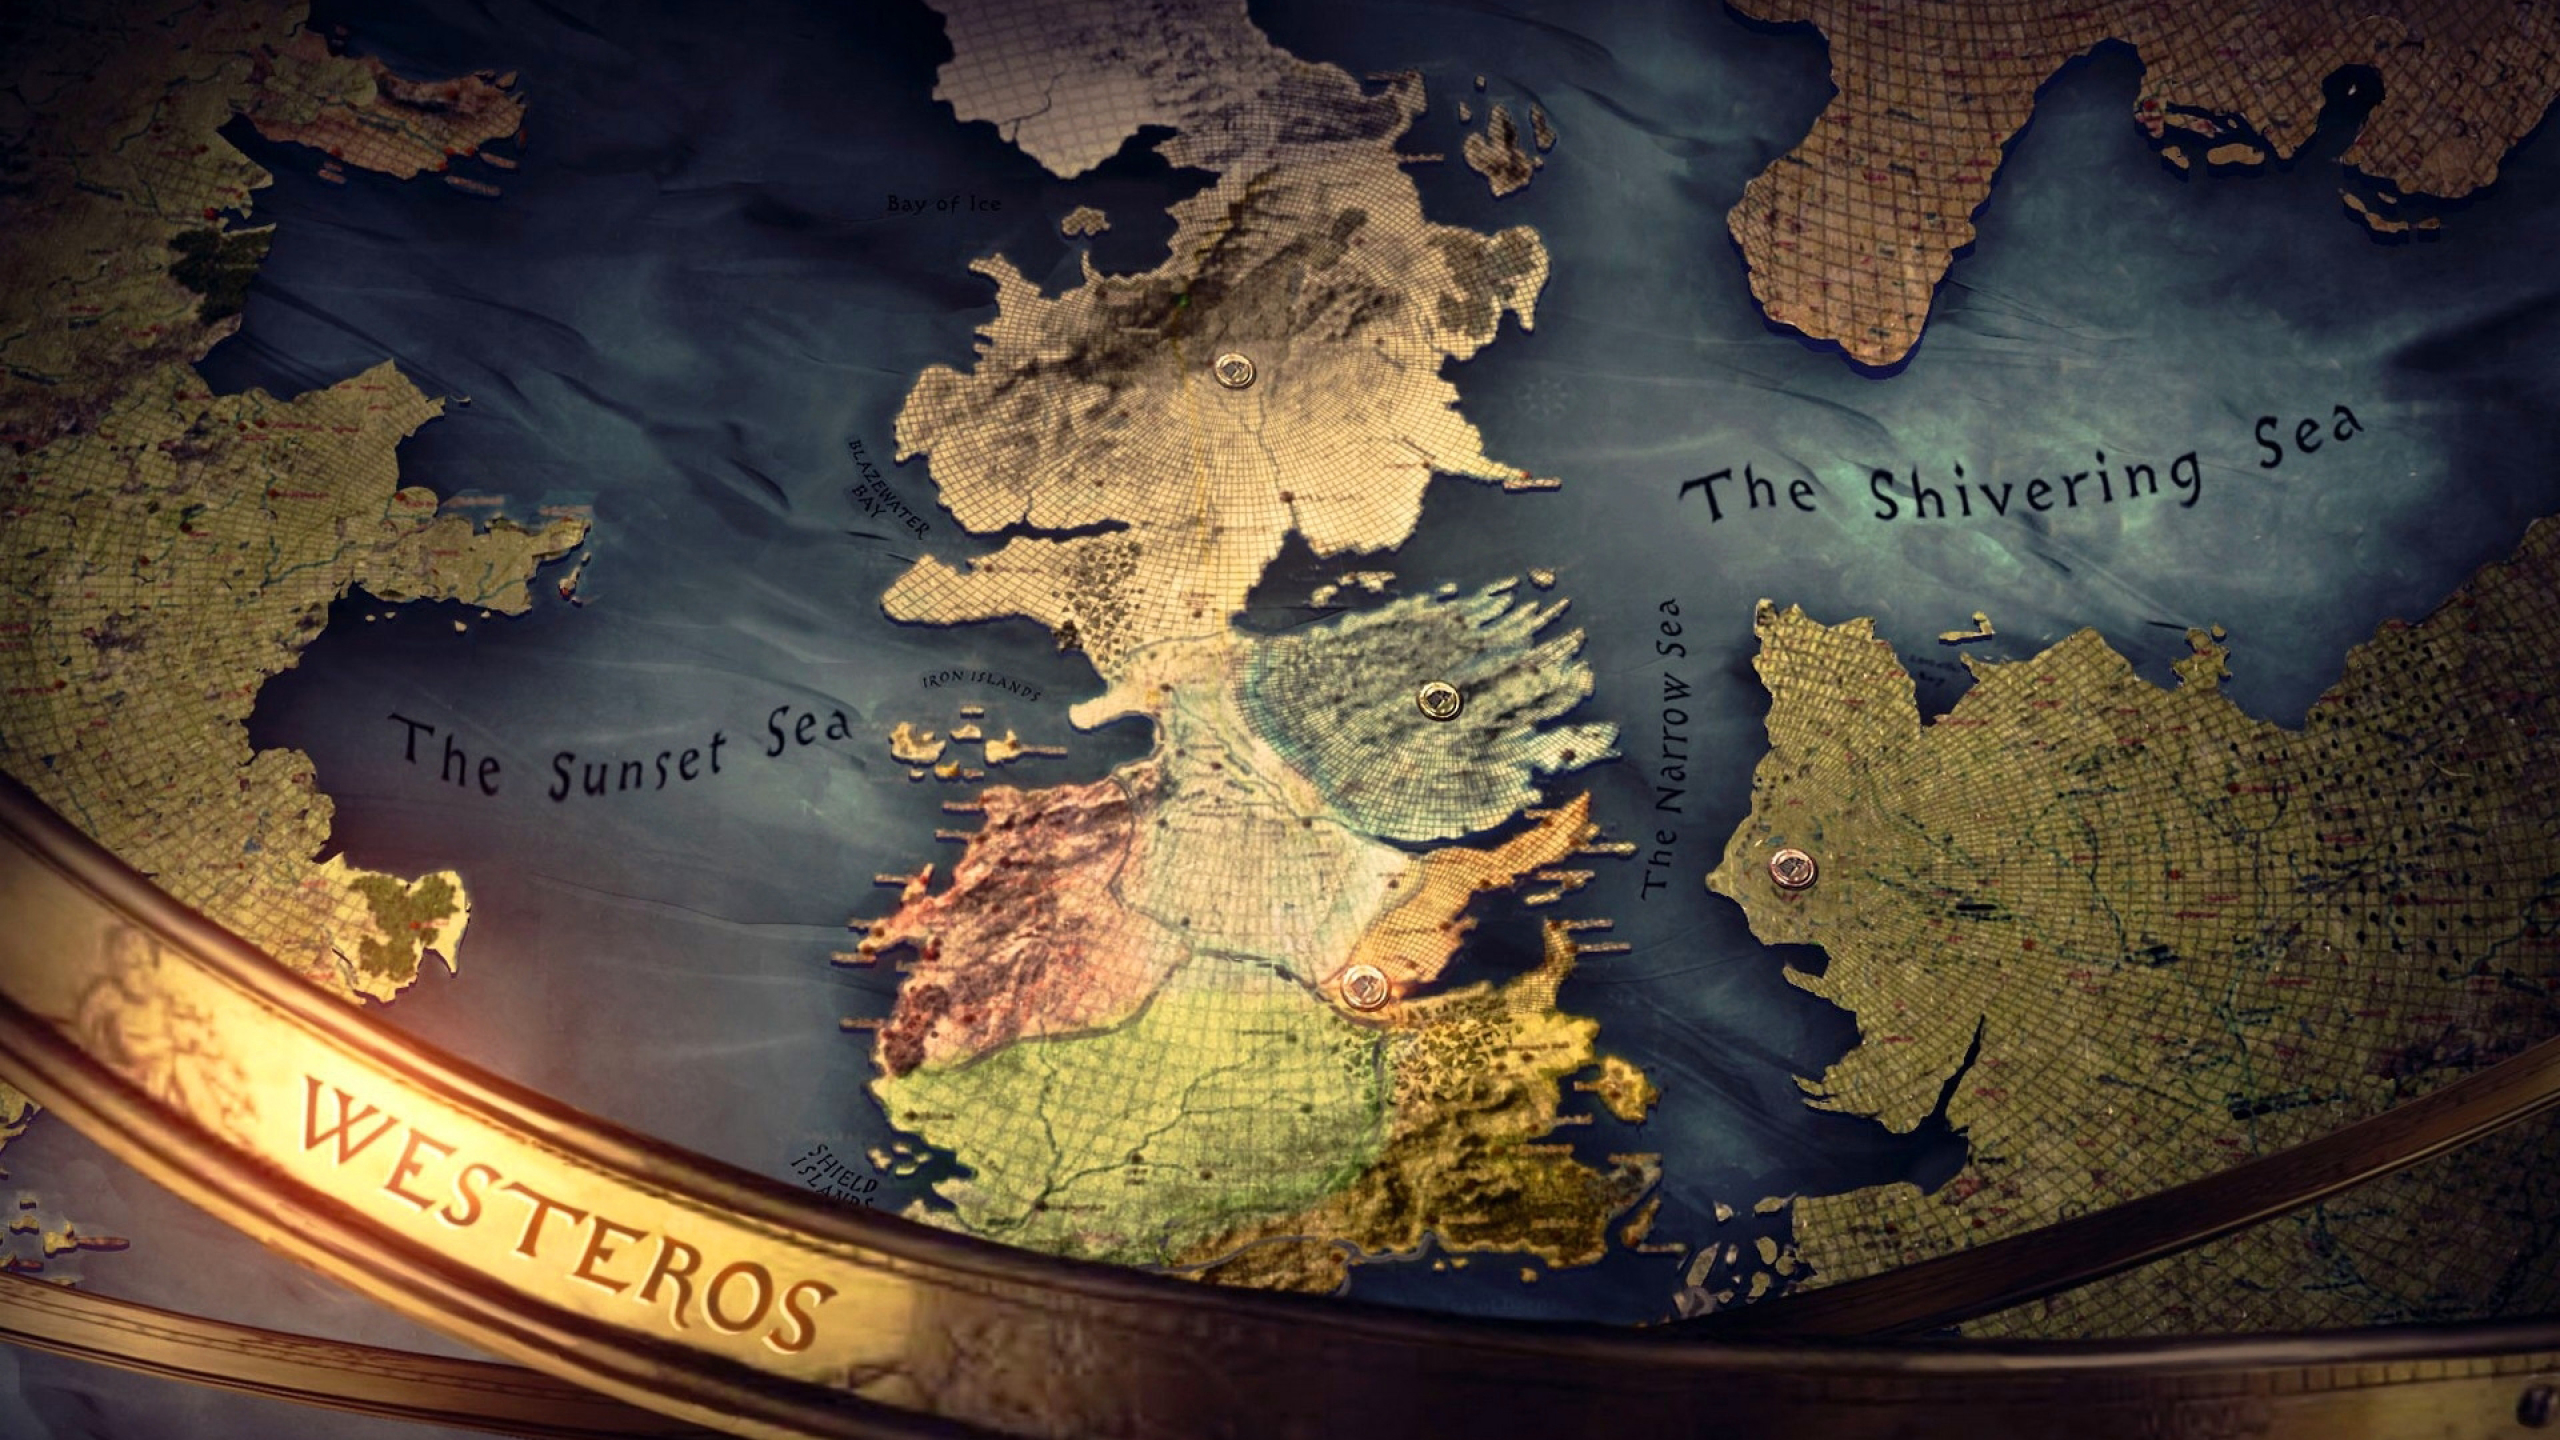 2560x1440 Westeros Map Game Of Thrones Tv Show Wallpaper 1440p